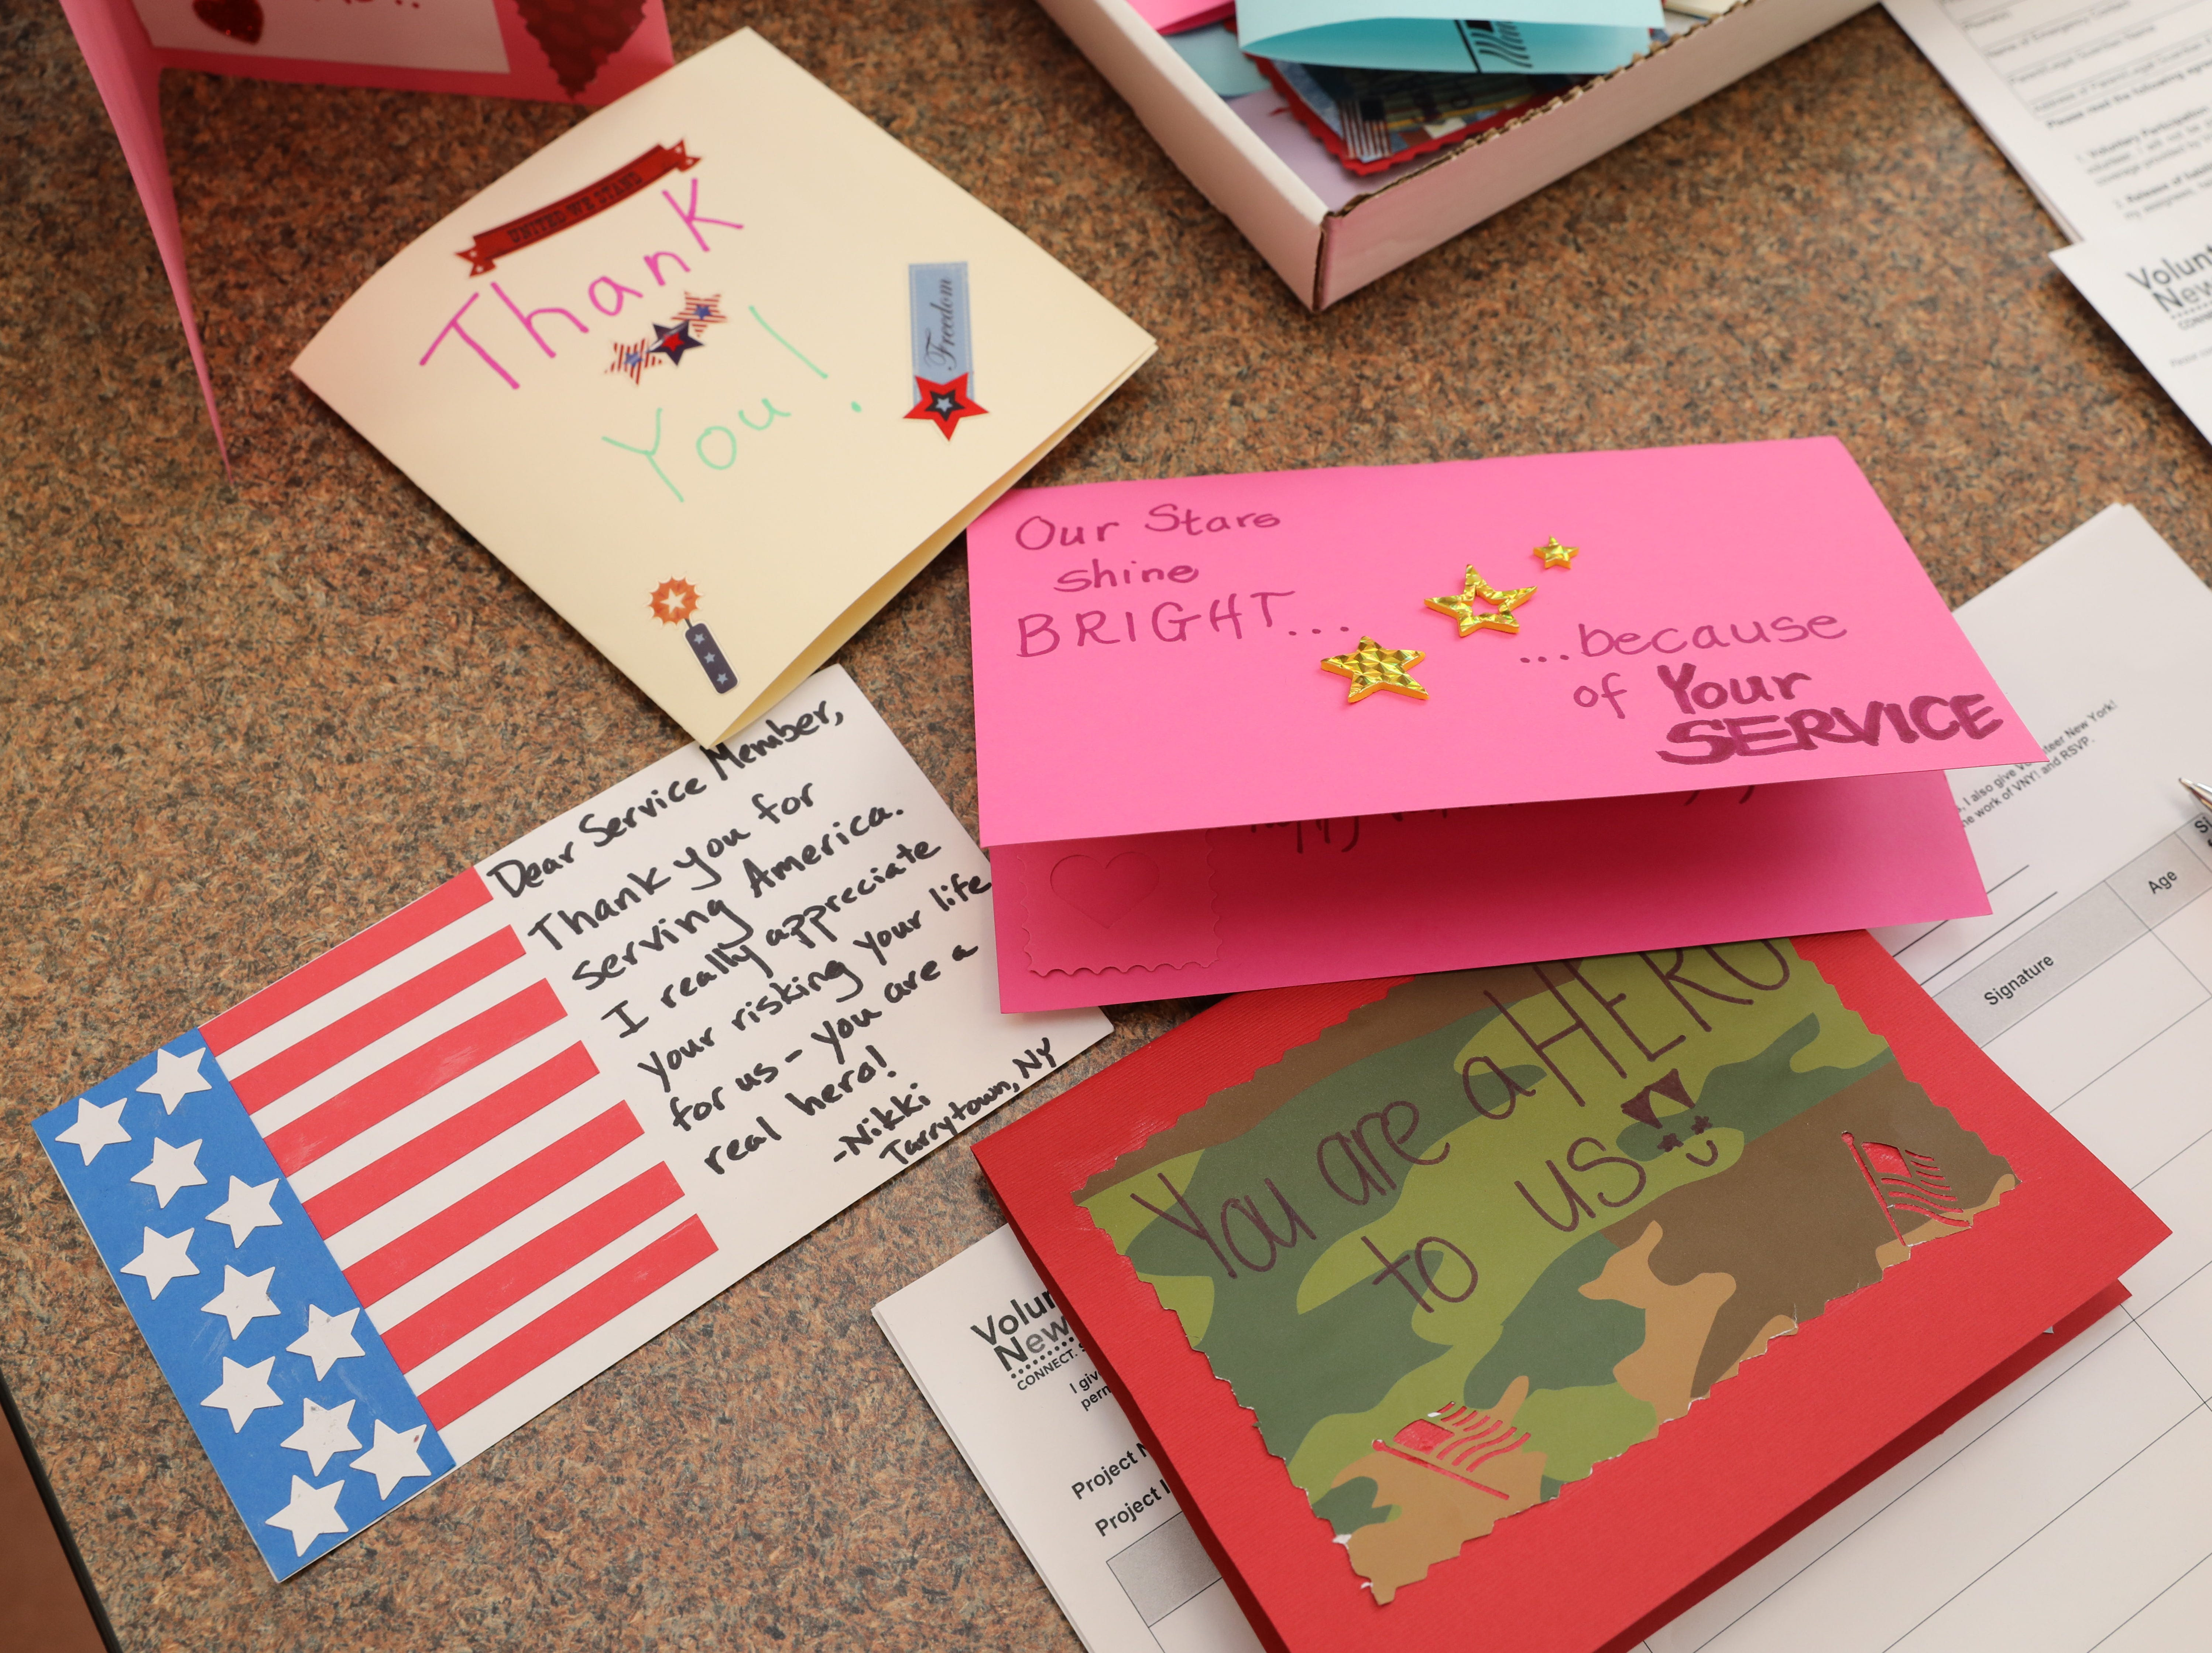 Greeting cards are pictured during the Volunteer New York, Martin Luther King Jr. National Day of Service program at Dominican College in Orangeburg, Jan. 19, 2019.